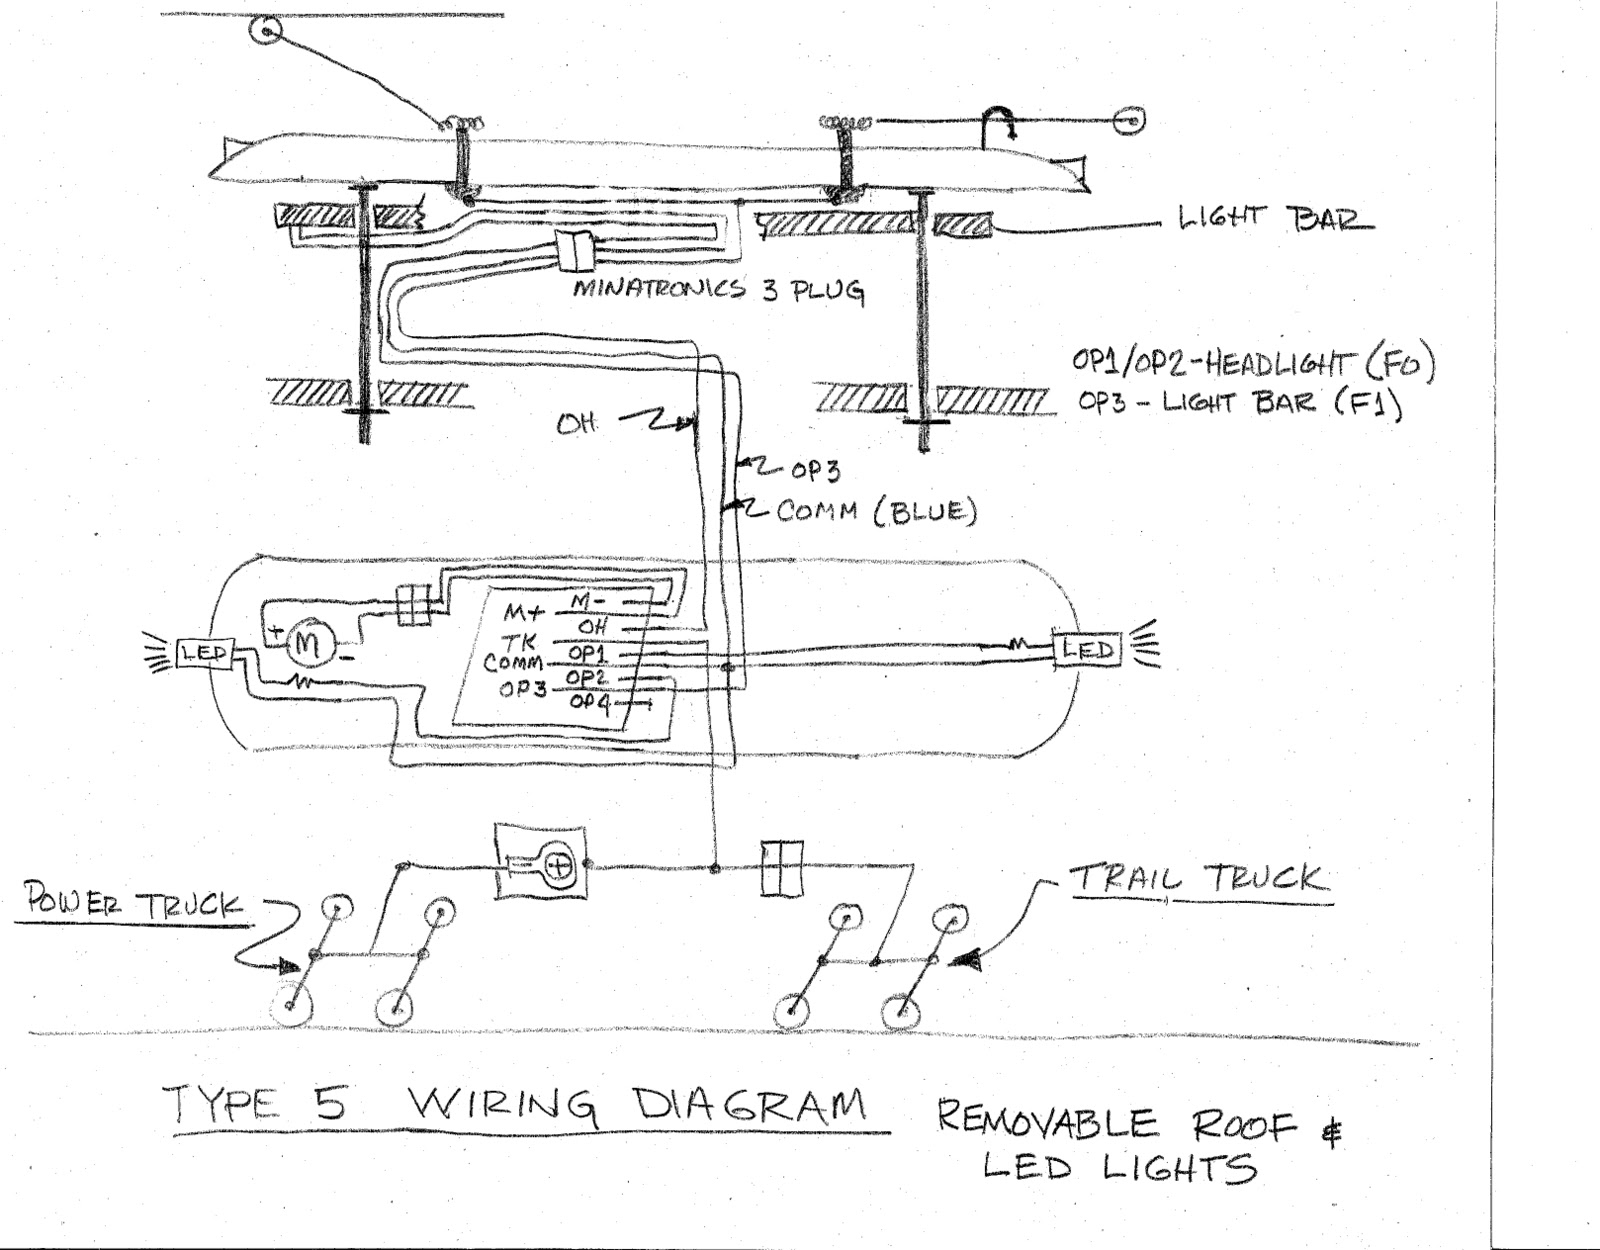 Dcc Wiring Diagram Ford Telstar Distributor O Scale Trolley Topics By Charlie Pitts And